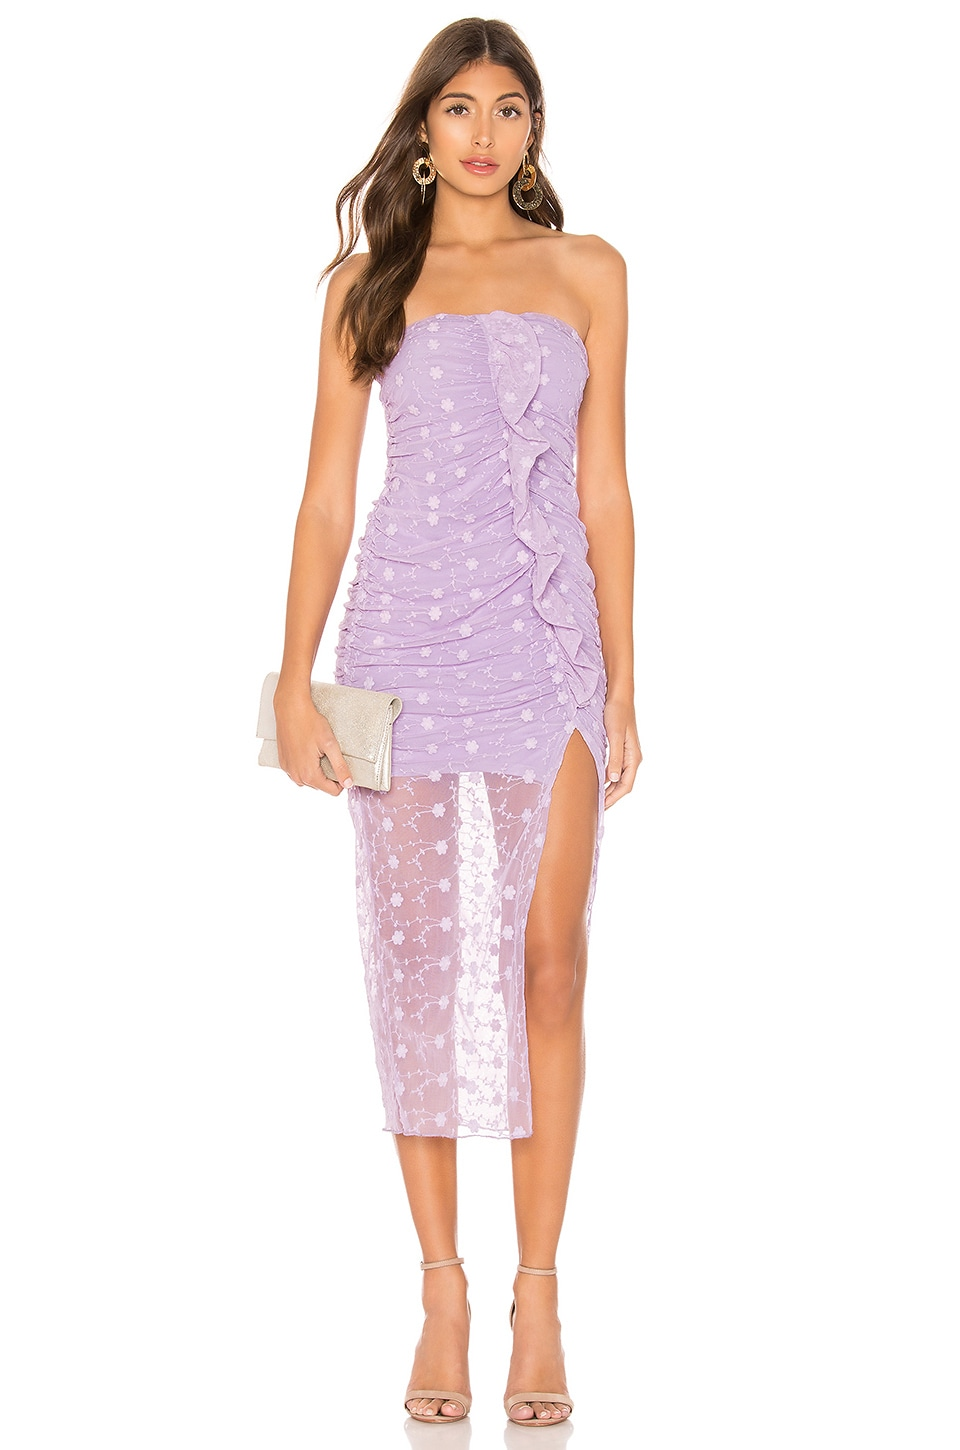 MAJORELLE Brady Dress in Amethyst Purple